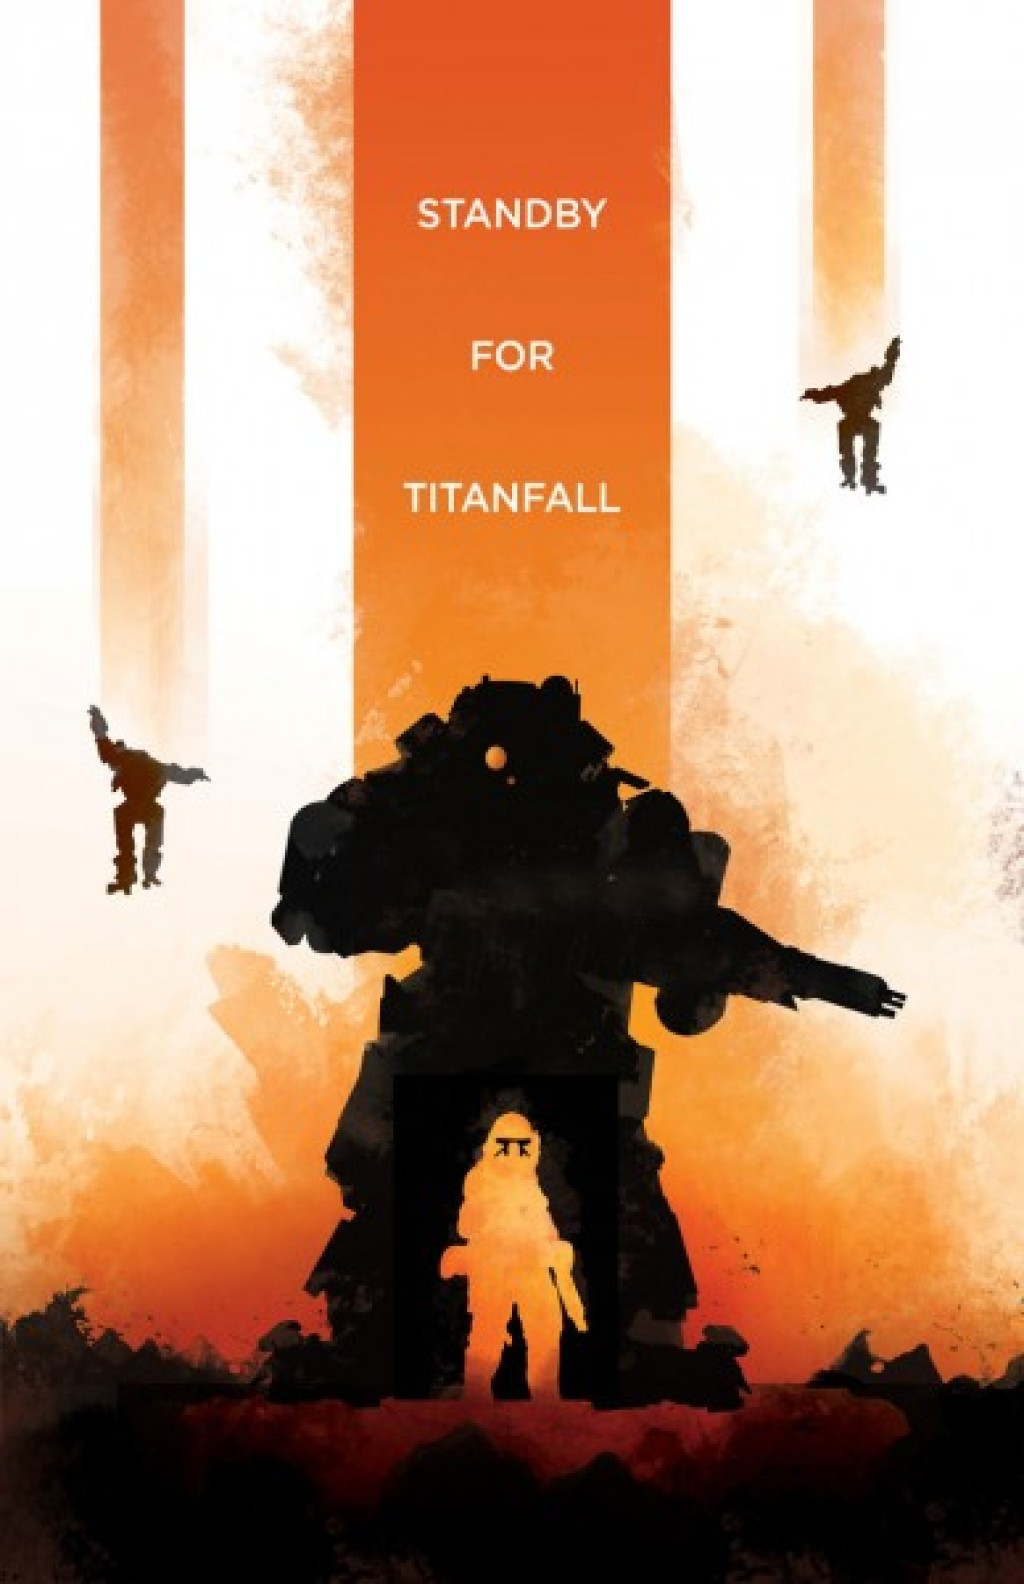 titanfall-video-game-poster-by-dylan-west